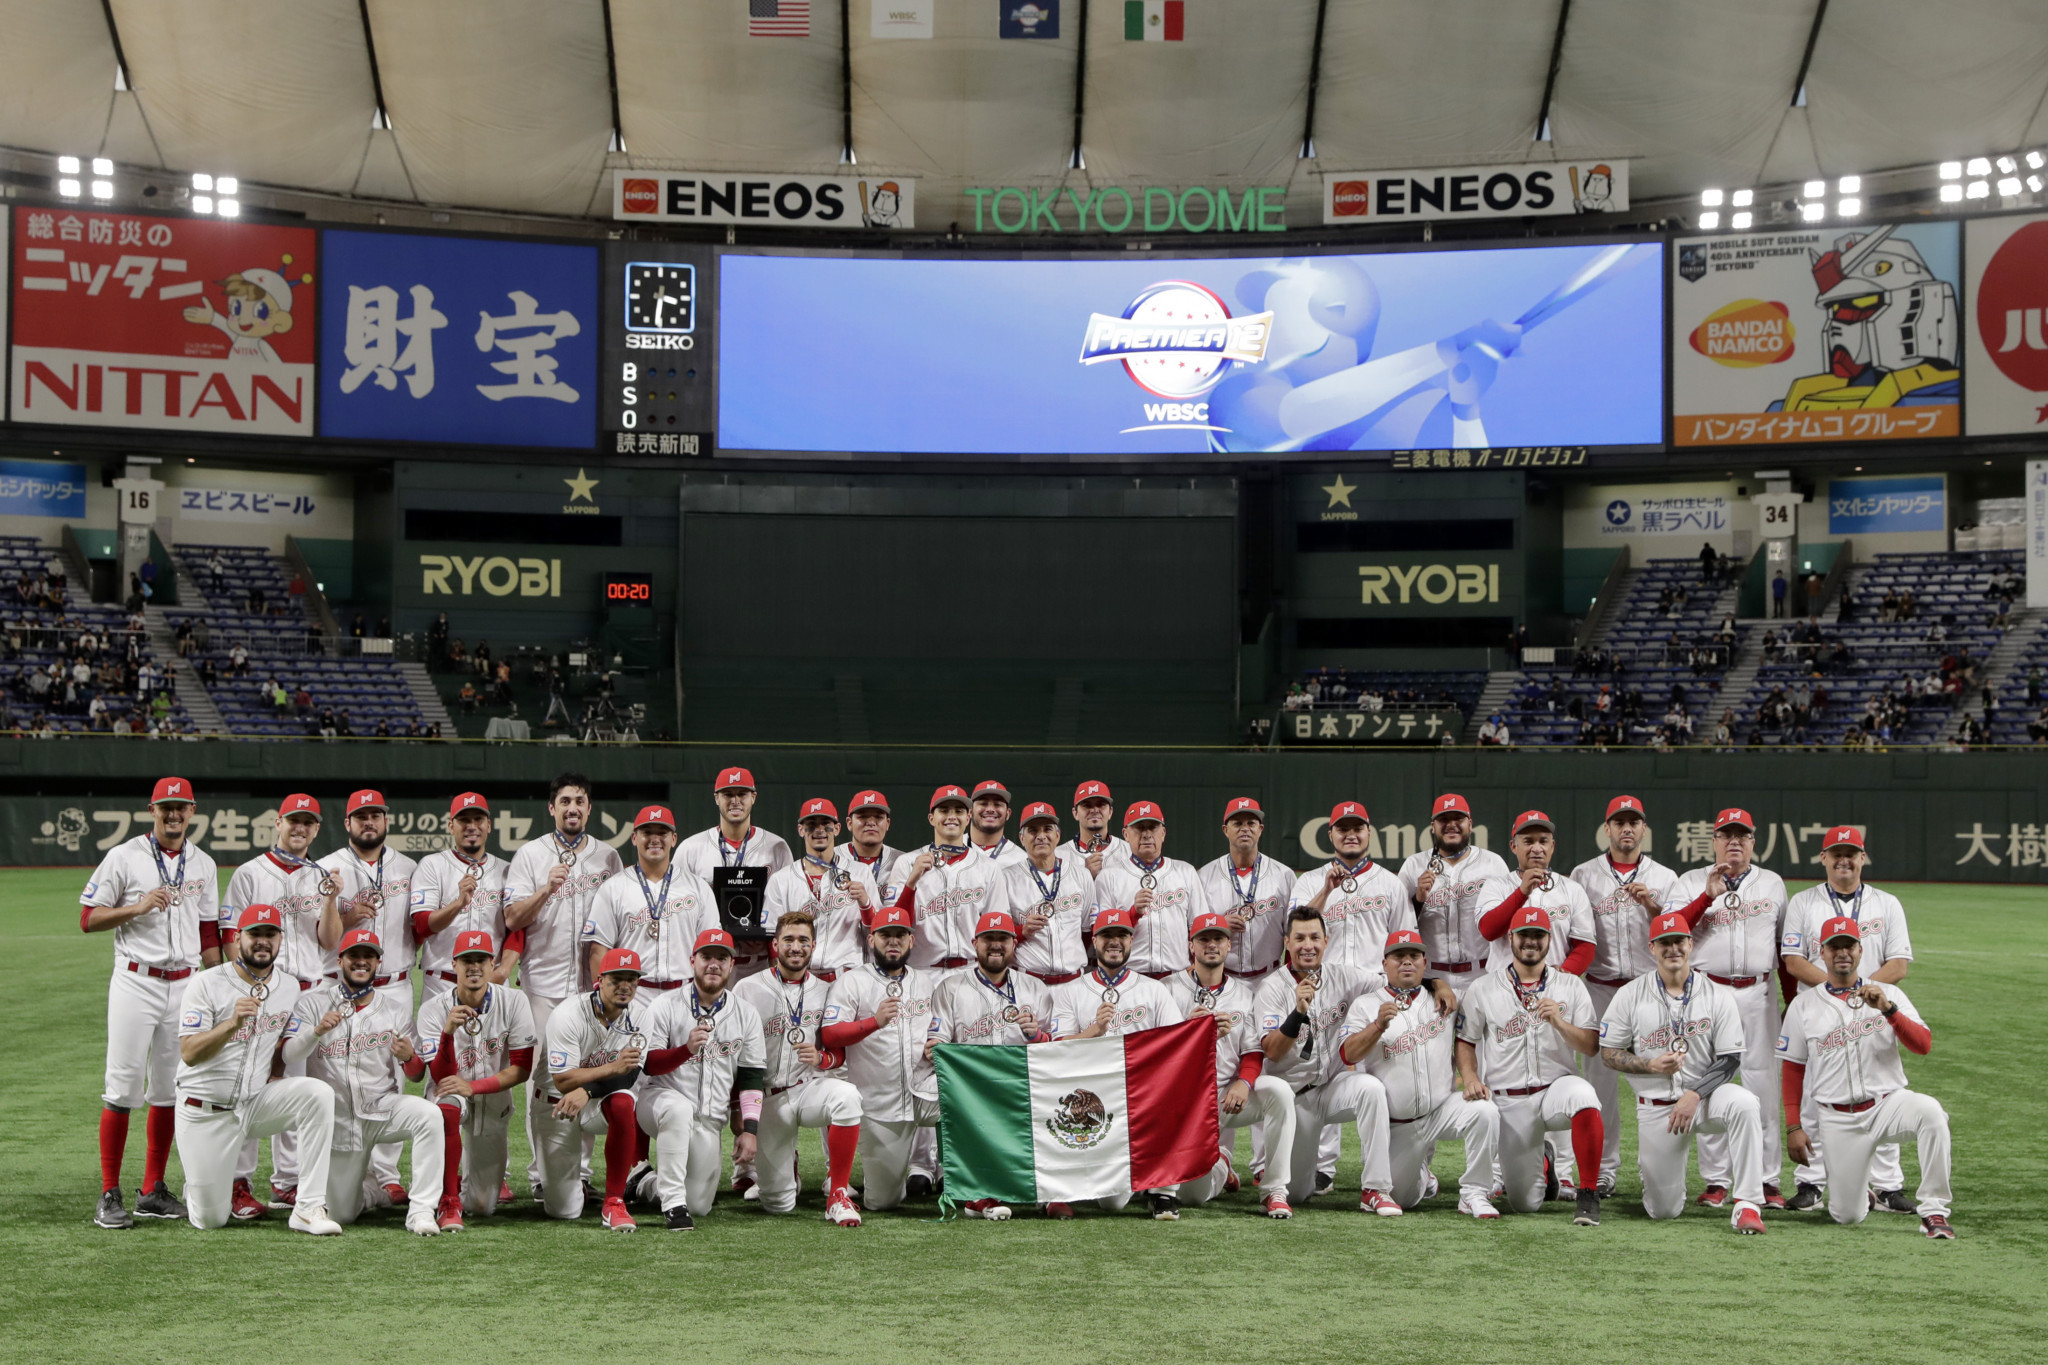 Mexico have qualified for Tokyo 2020 and would be among the countries likely to benefit if a fresh agreement is reached for MLB 40-man roster players to take part ©Getty Images